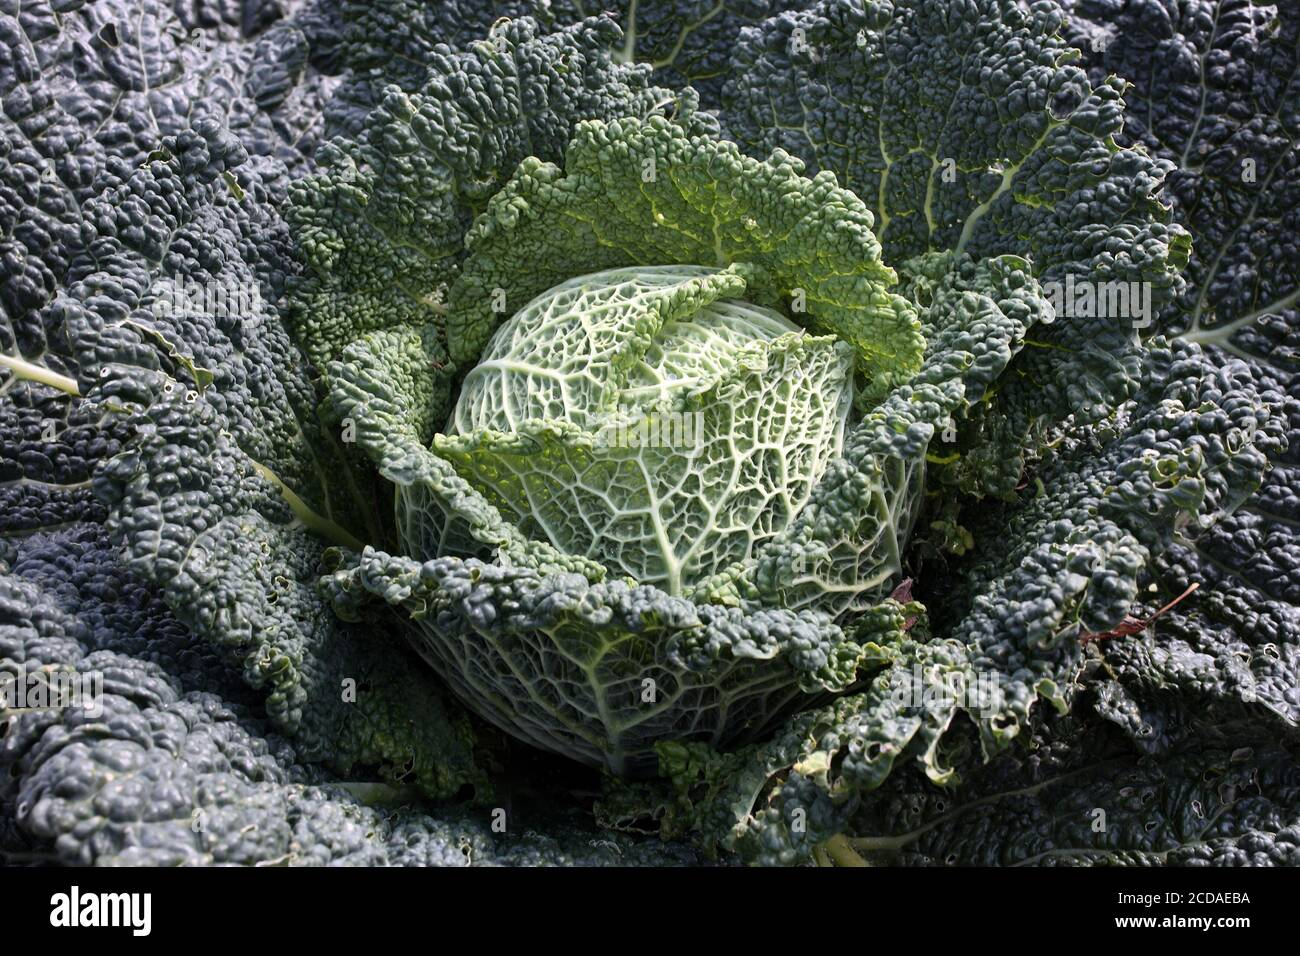 Green cabbage (Brassica oleracea) background like kale and spring greens a vegetable grown for its fresh nutition food health benefits stock photo ima Stock Photo